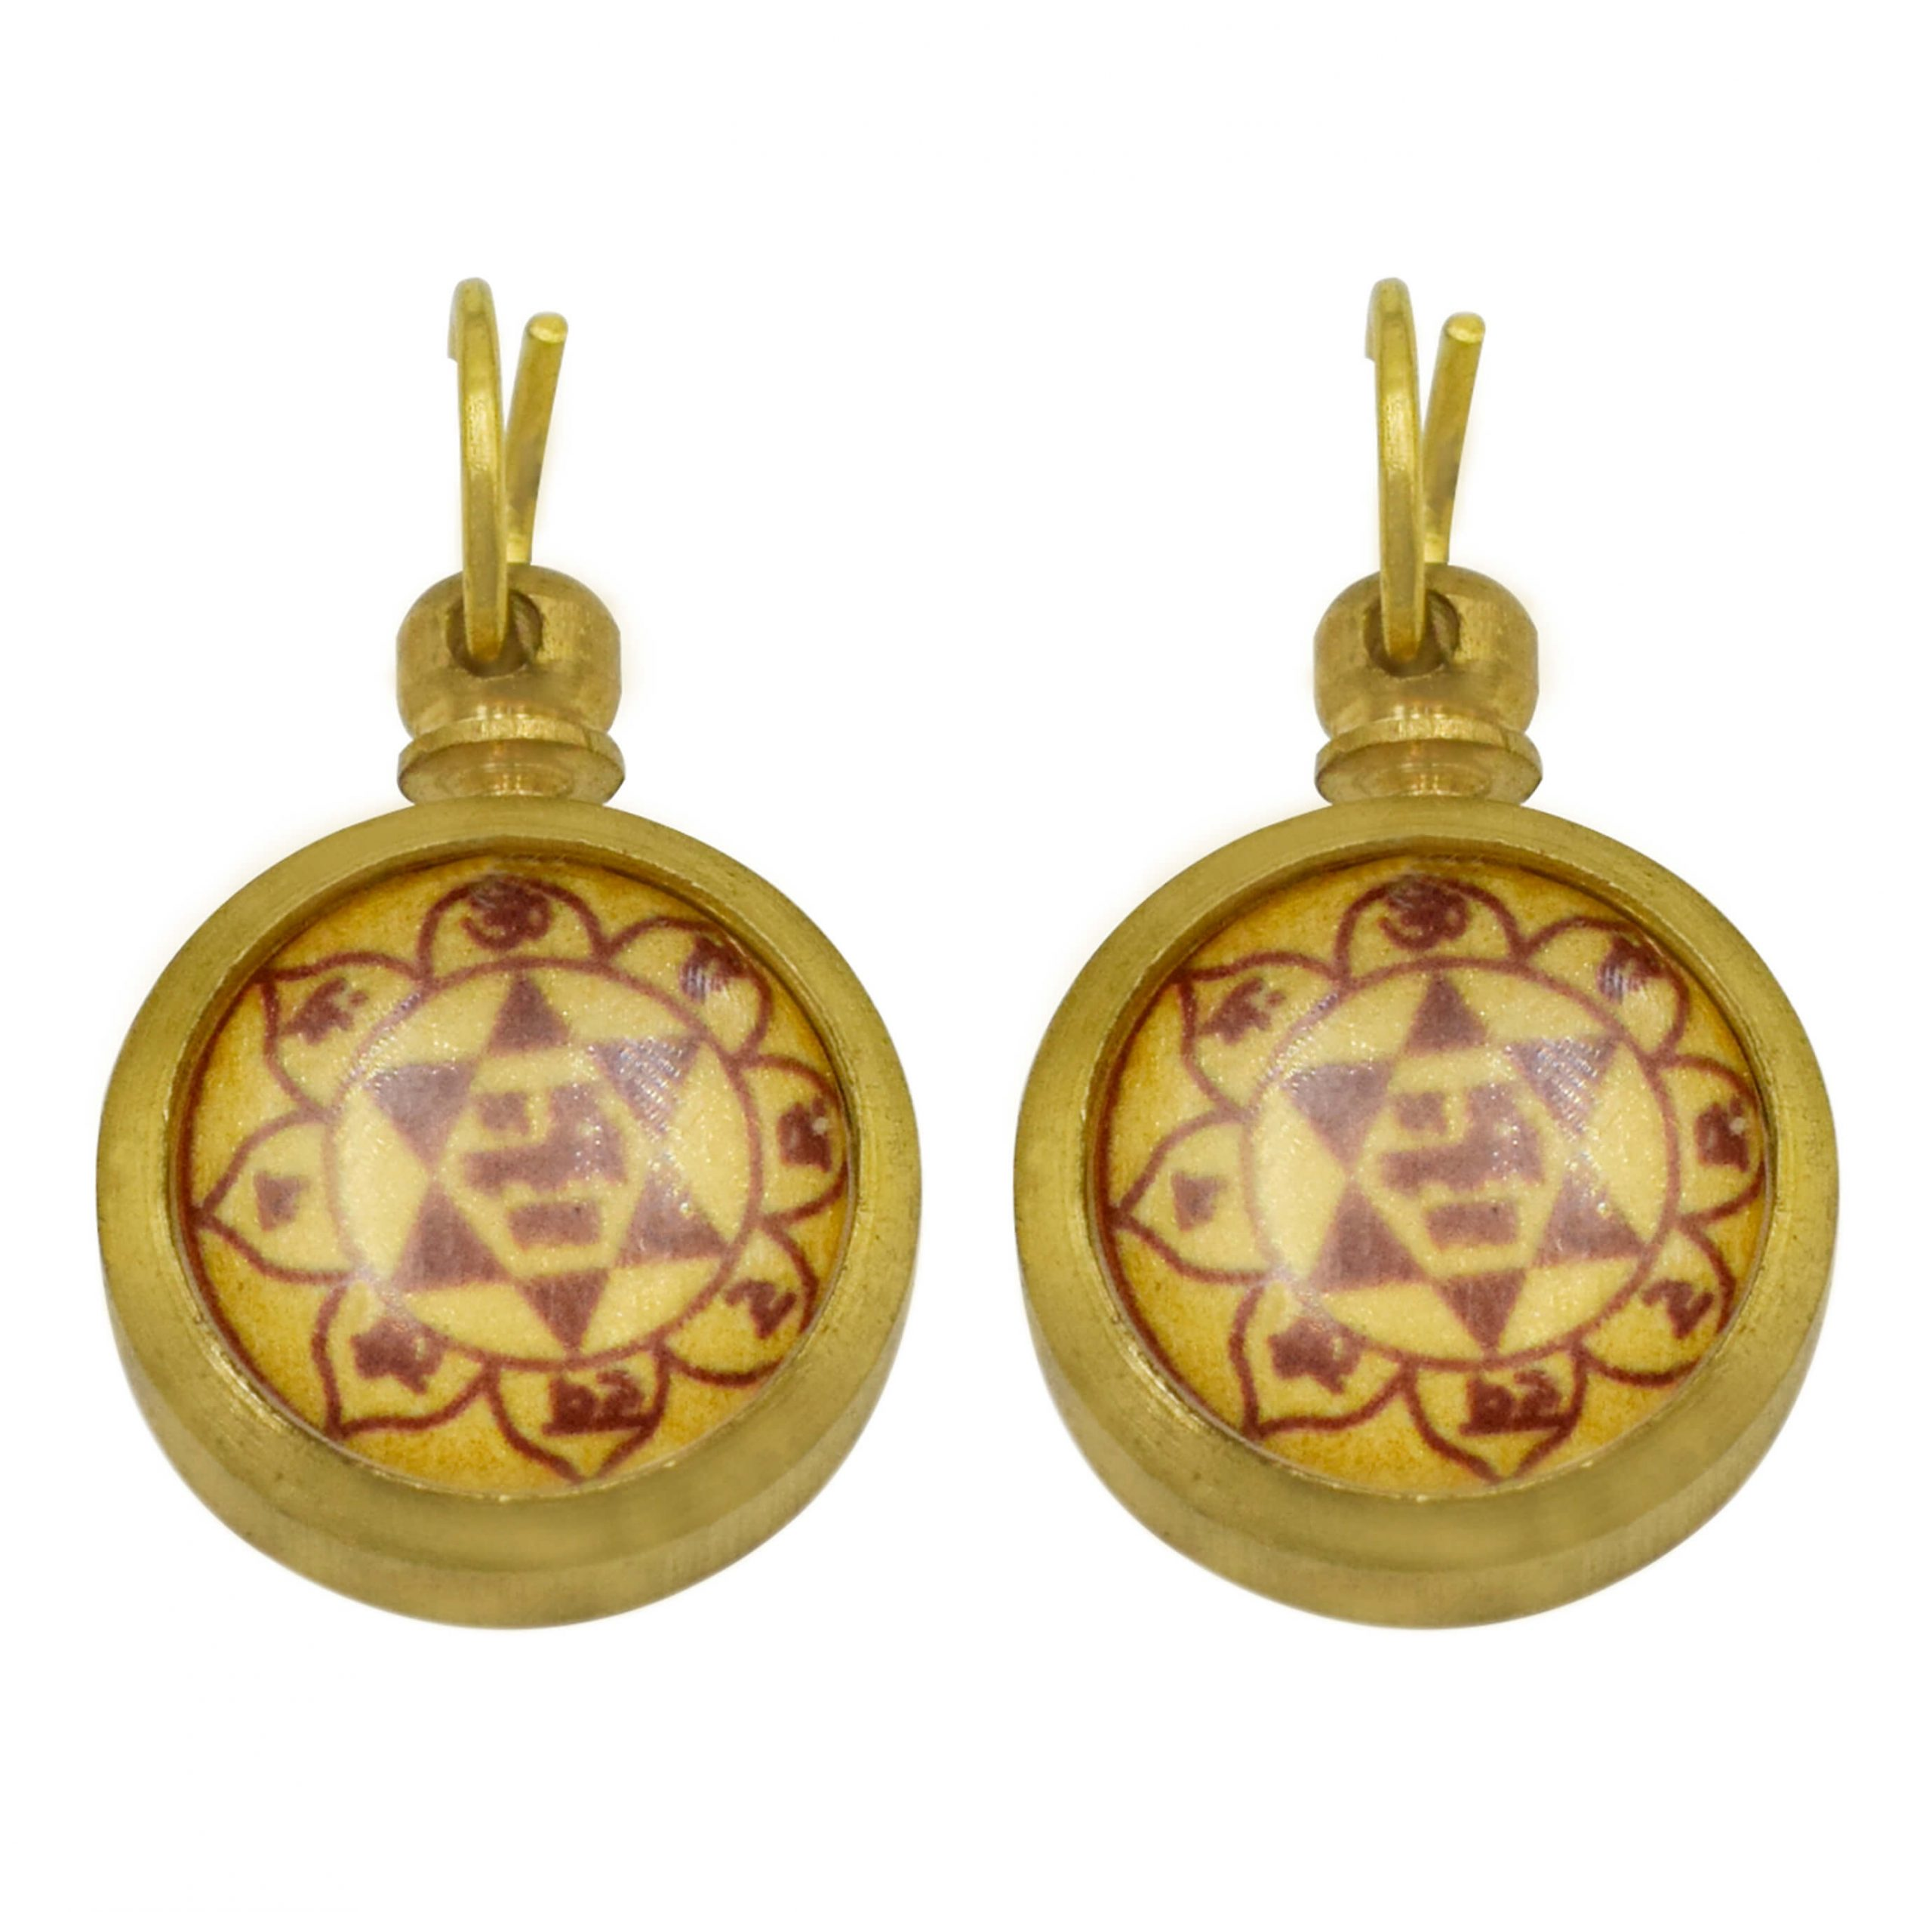 Maa Saraswati Locket (Pack of 2)